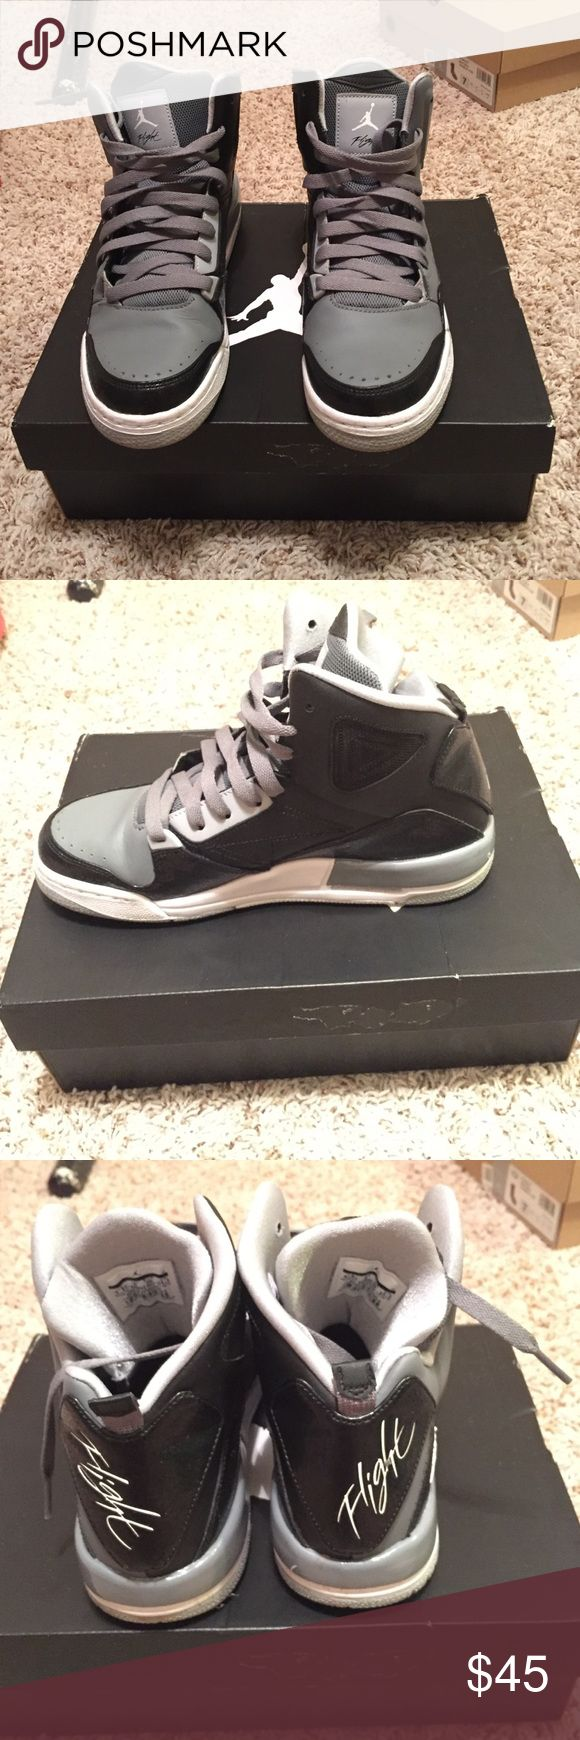 Like new Jordan's high top tennis shoes These shoes have only been worn once to prom! They are gray and black and are in great condition. Size 6.5Y. I wear size 7.5 in women's and they fit! Make an offer in the comments! Jordan Shoes Sneakers